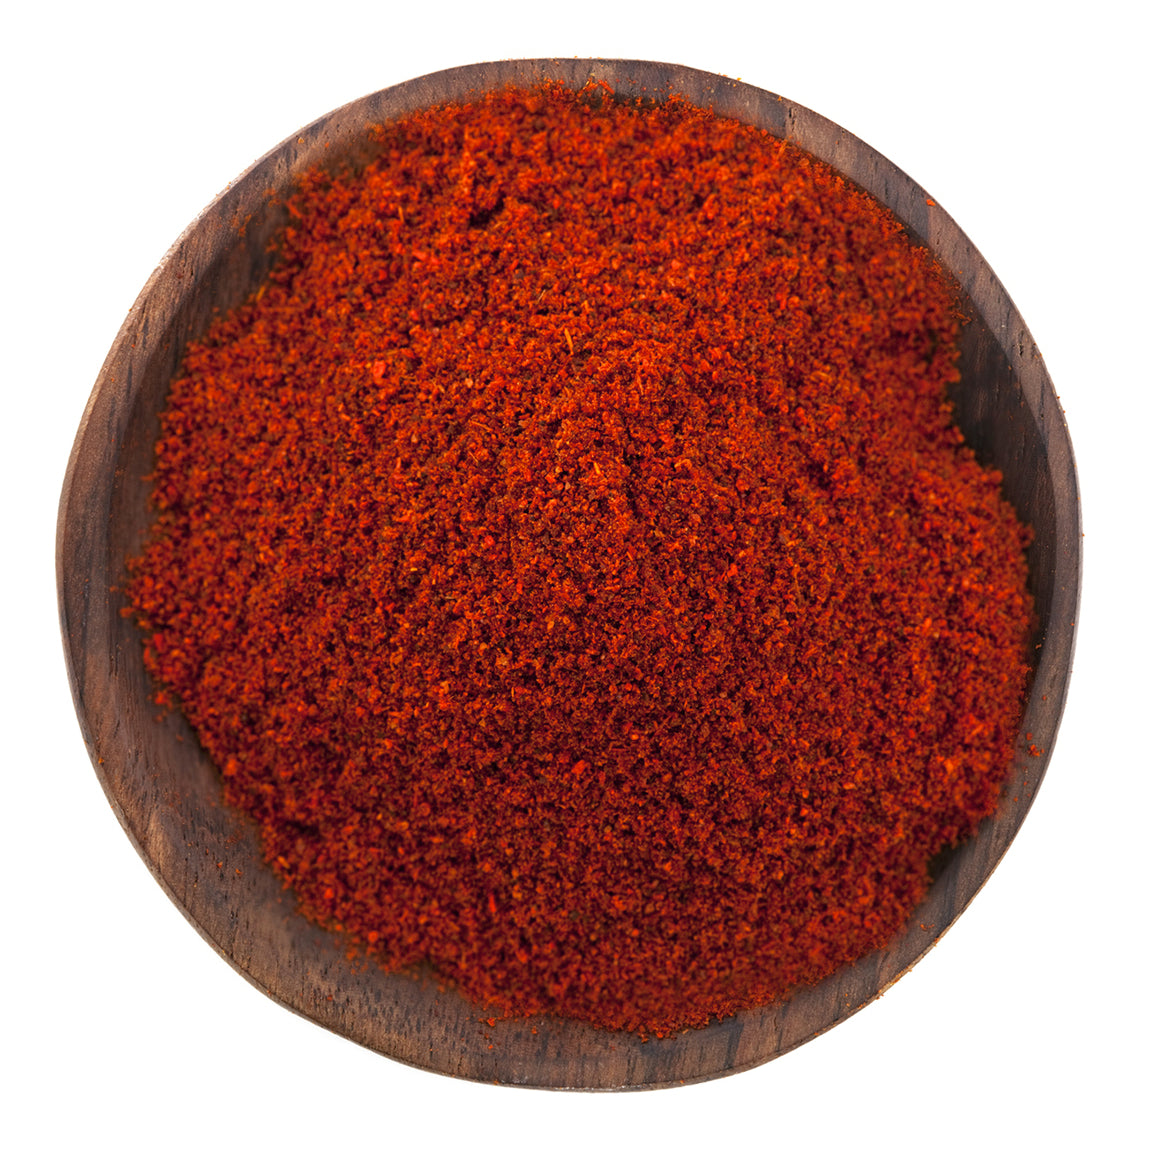 Paprika-Hot Smoked - Spices - Red Stick Spice Company